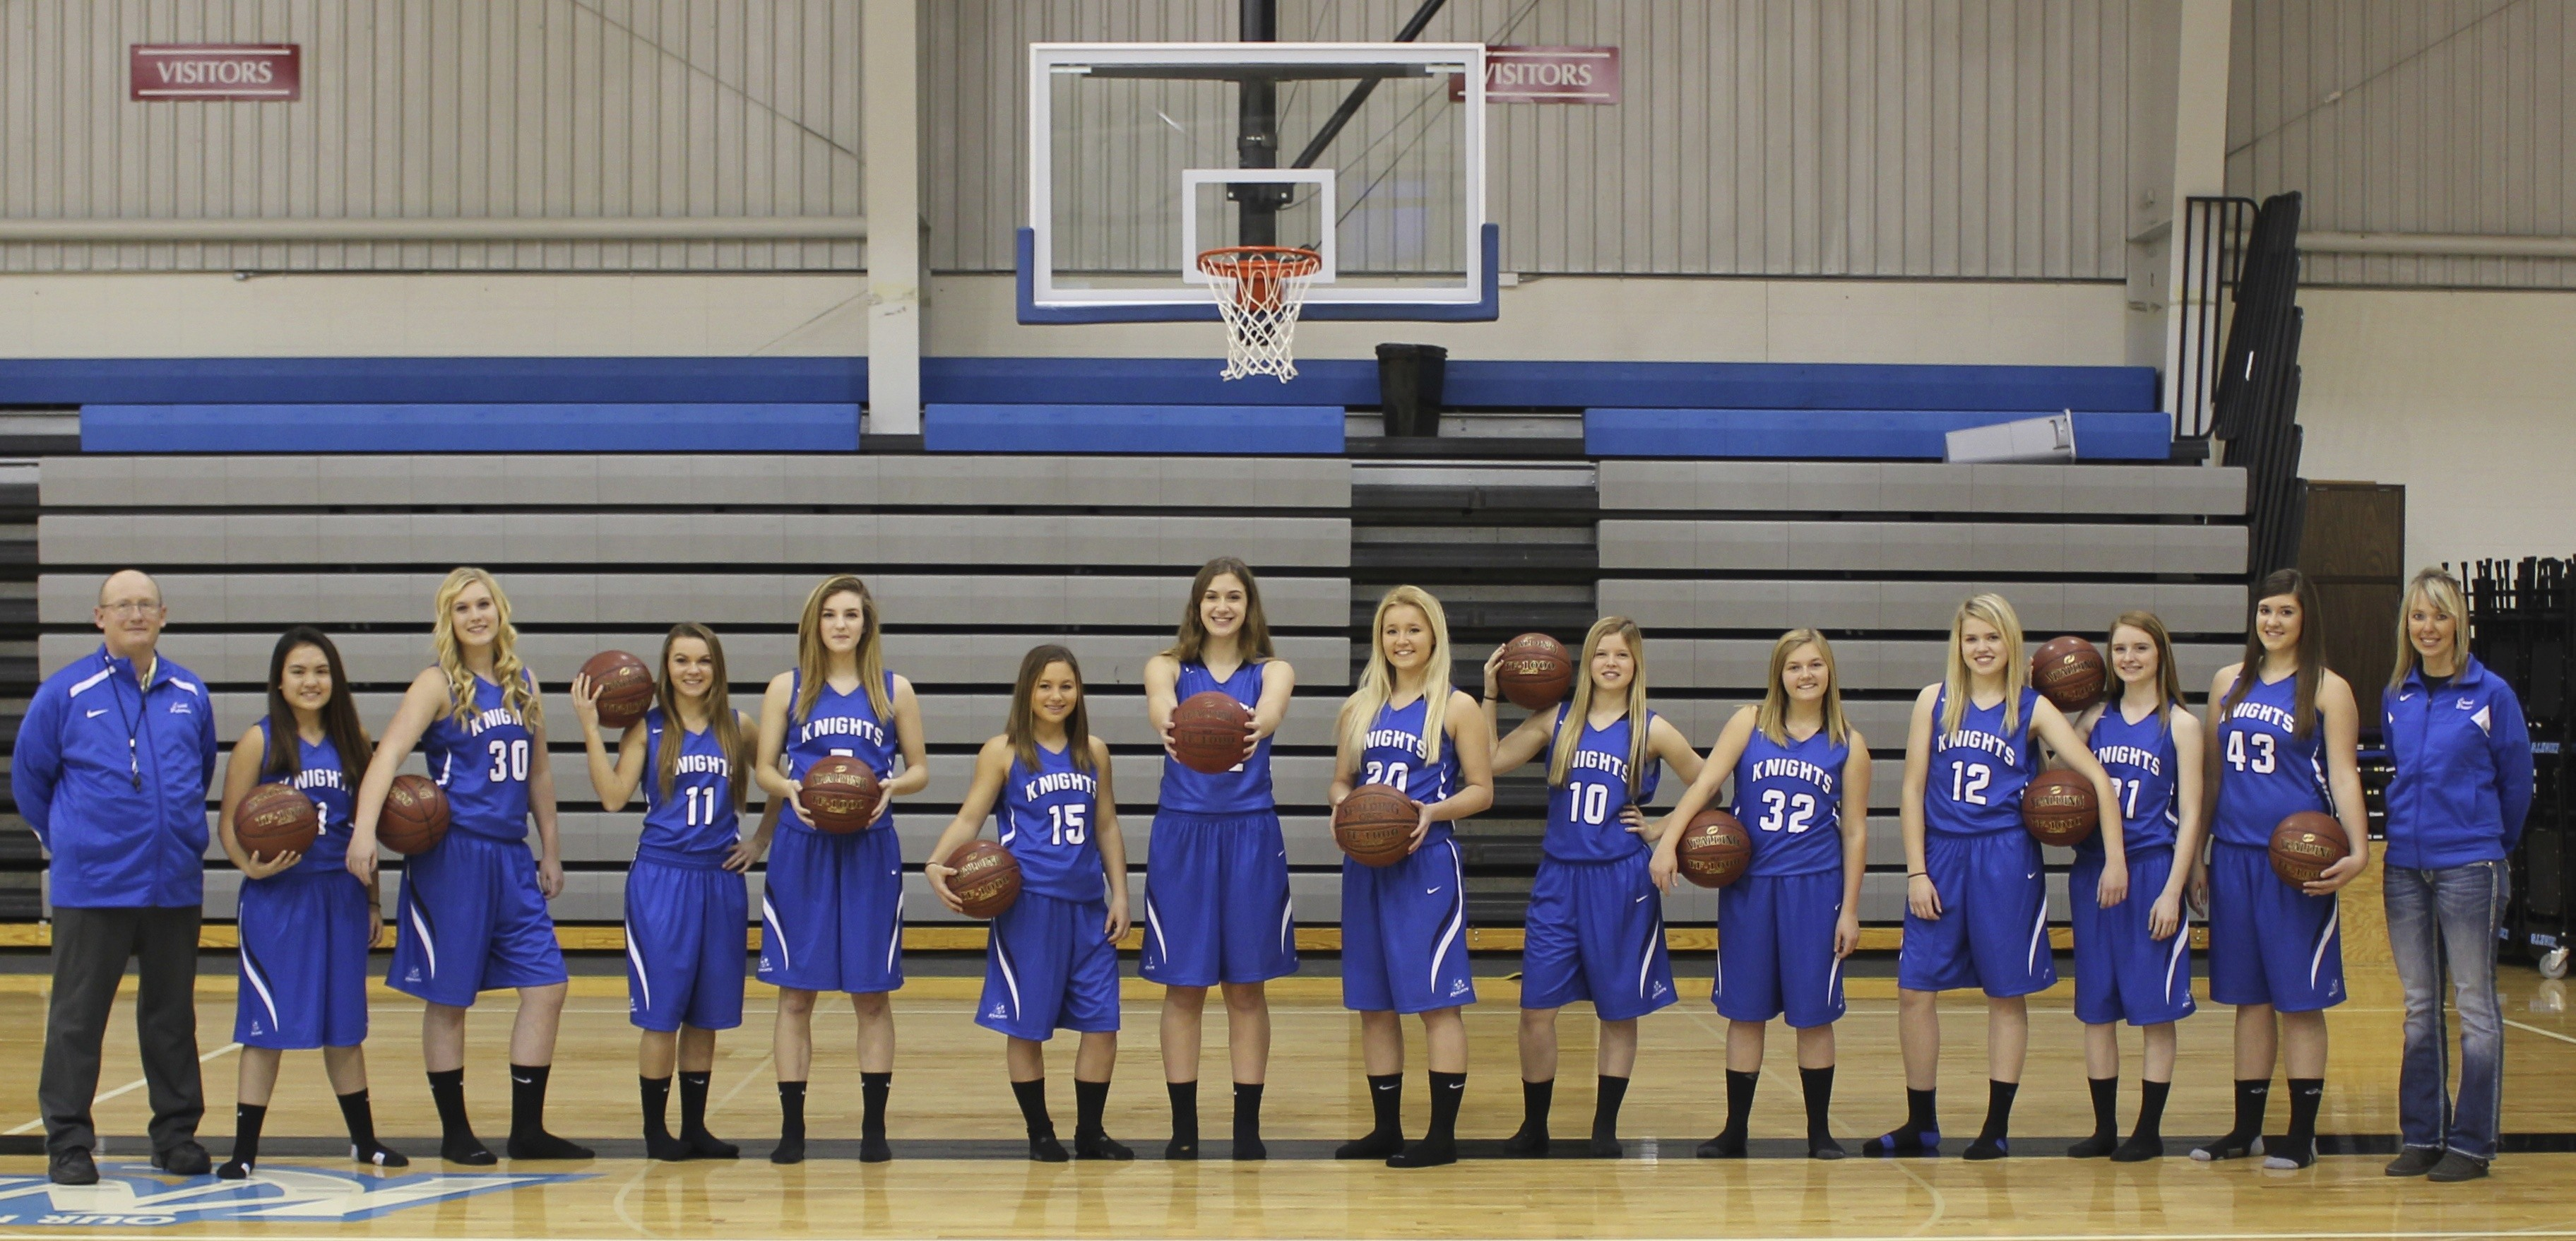 westhope girls Find the best youth basketball leagues, kids camps & tournaments near me in north dakota fall, winter, spring & summer 2018, boys & girls bball leagues in nd.